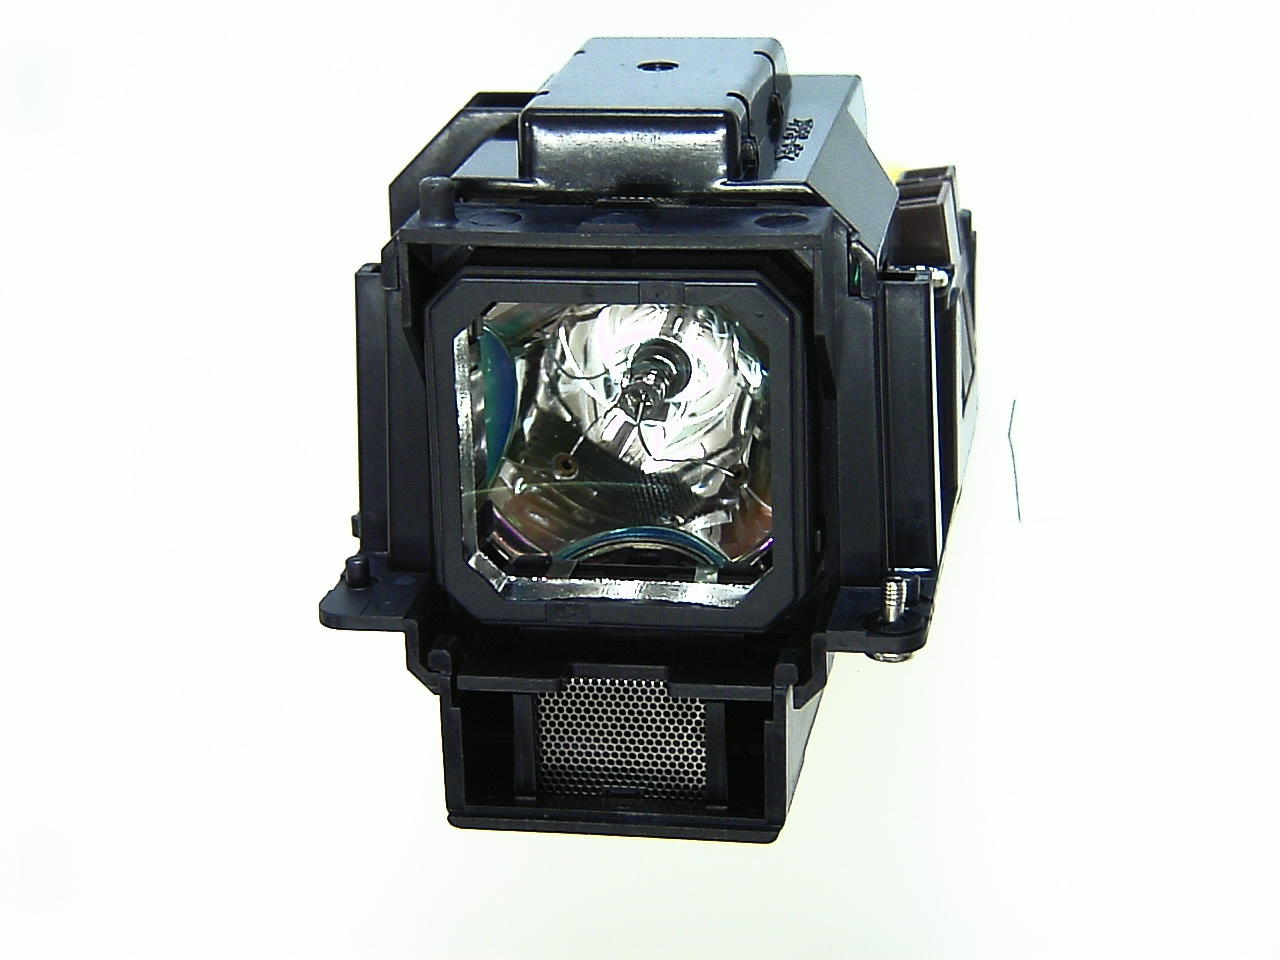 V7 Projector Lamp for selected projectors by DUKANE, UTAX, SMARTBOARD, CANO